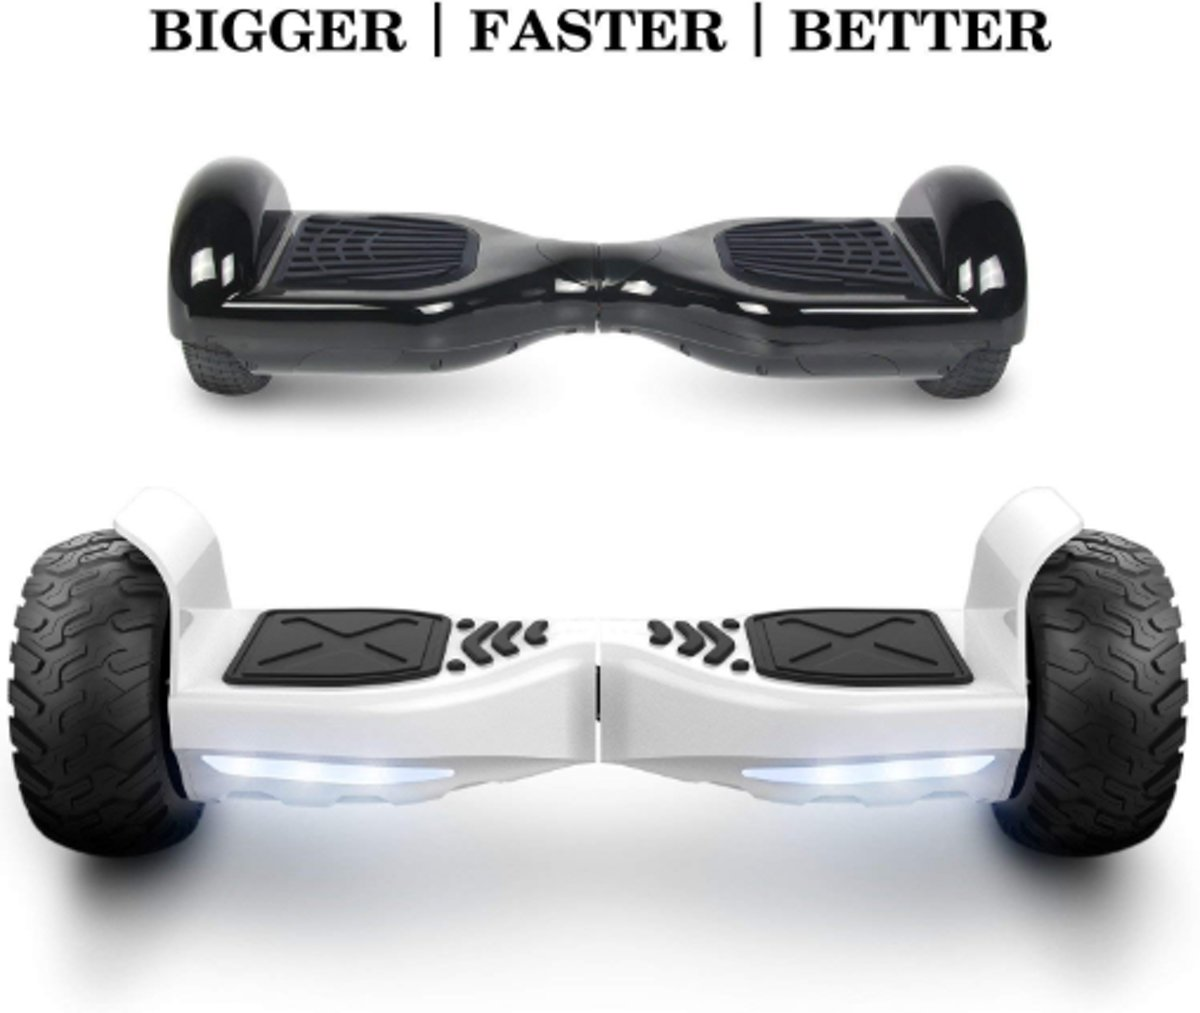 I-CIGO Hoverboard HUMMER Zelfbalancerende scooter ALLE TERREINEN 8.5 INCHES Off Road App Functie met V5 Bluetooth speaker&TAOTAO 2018 SOFTWARE (Wit)